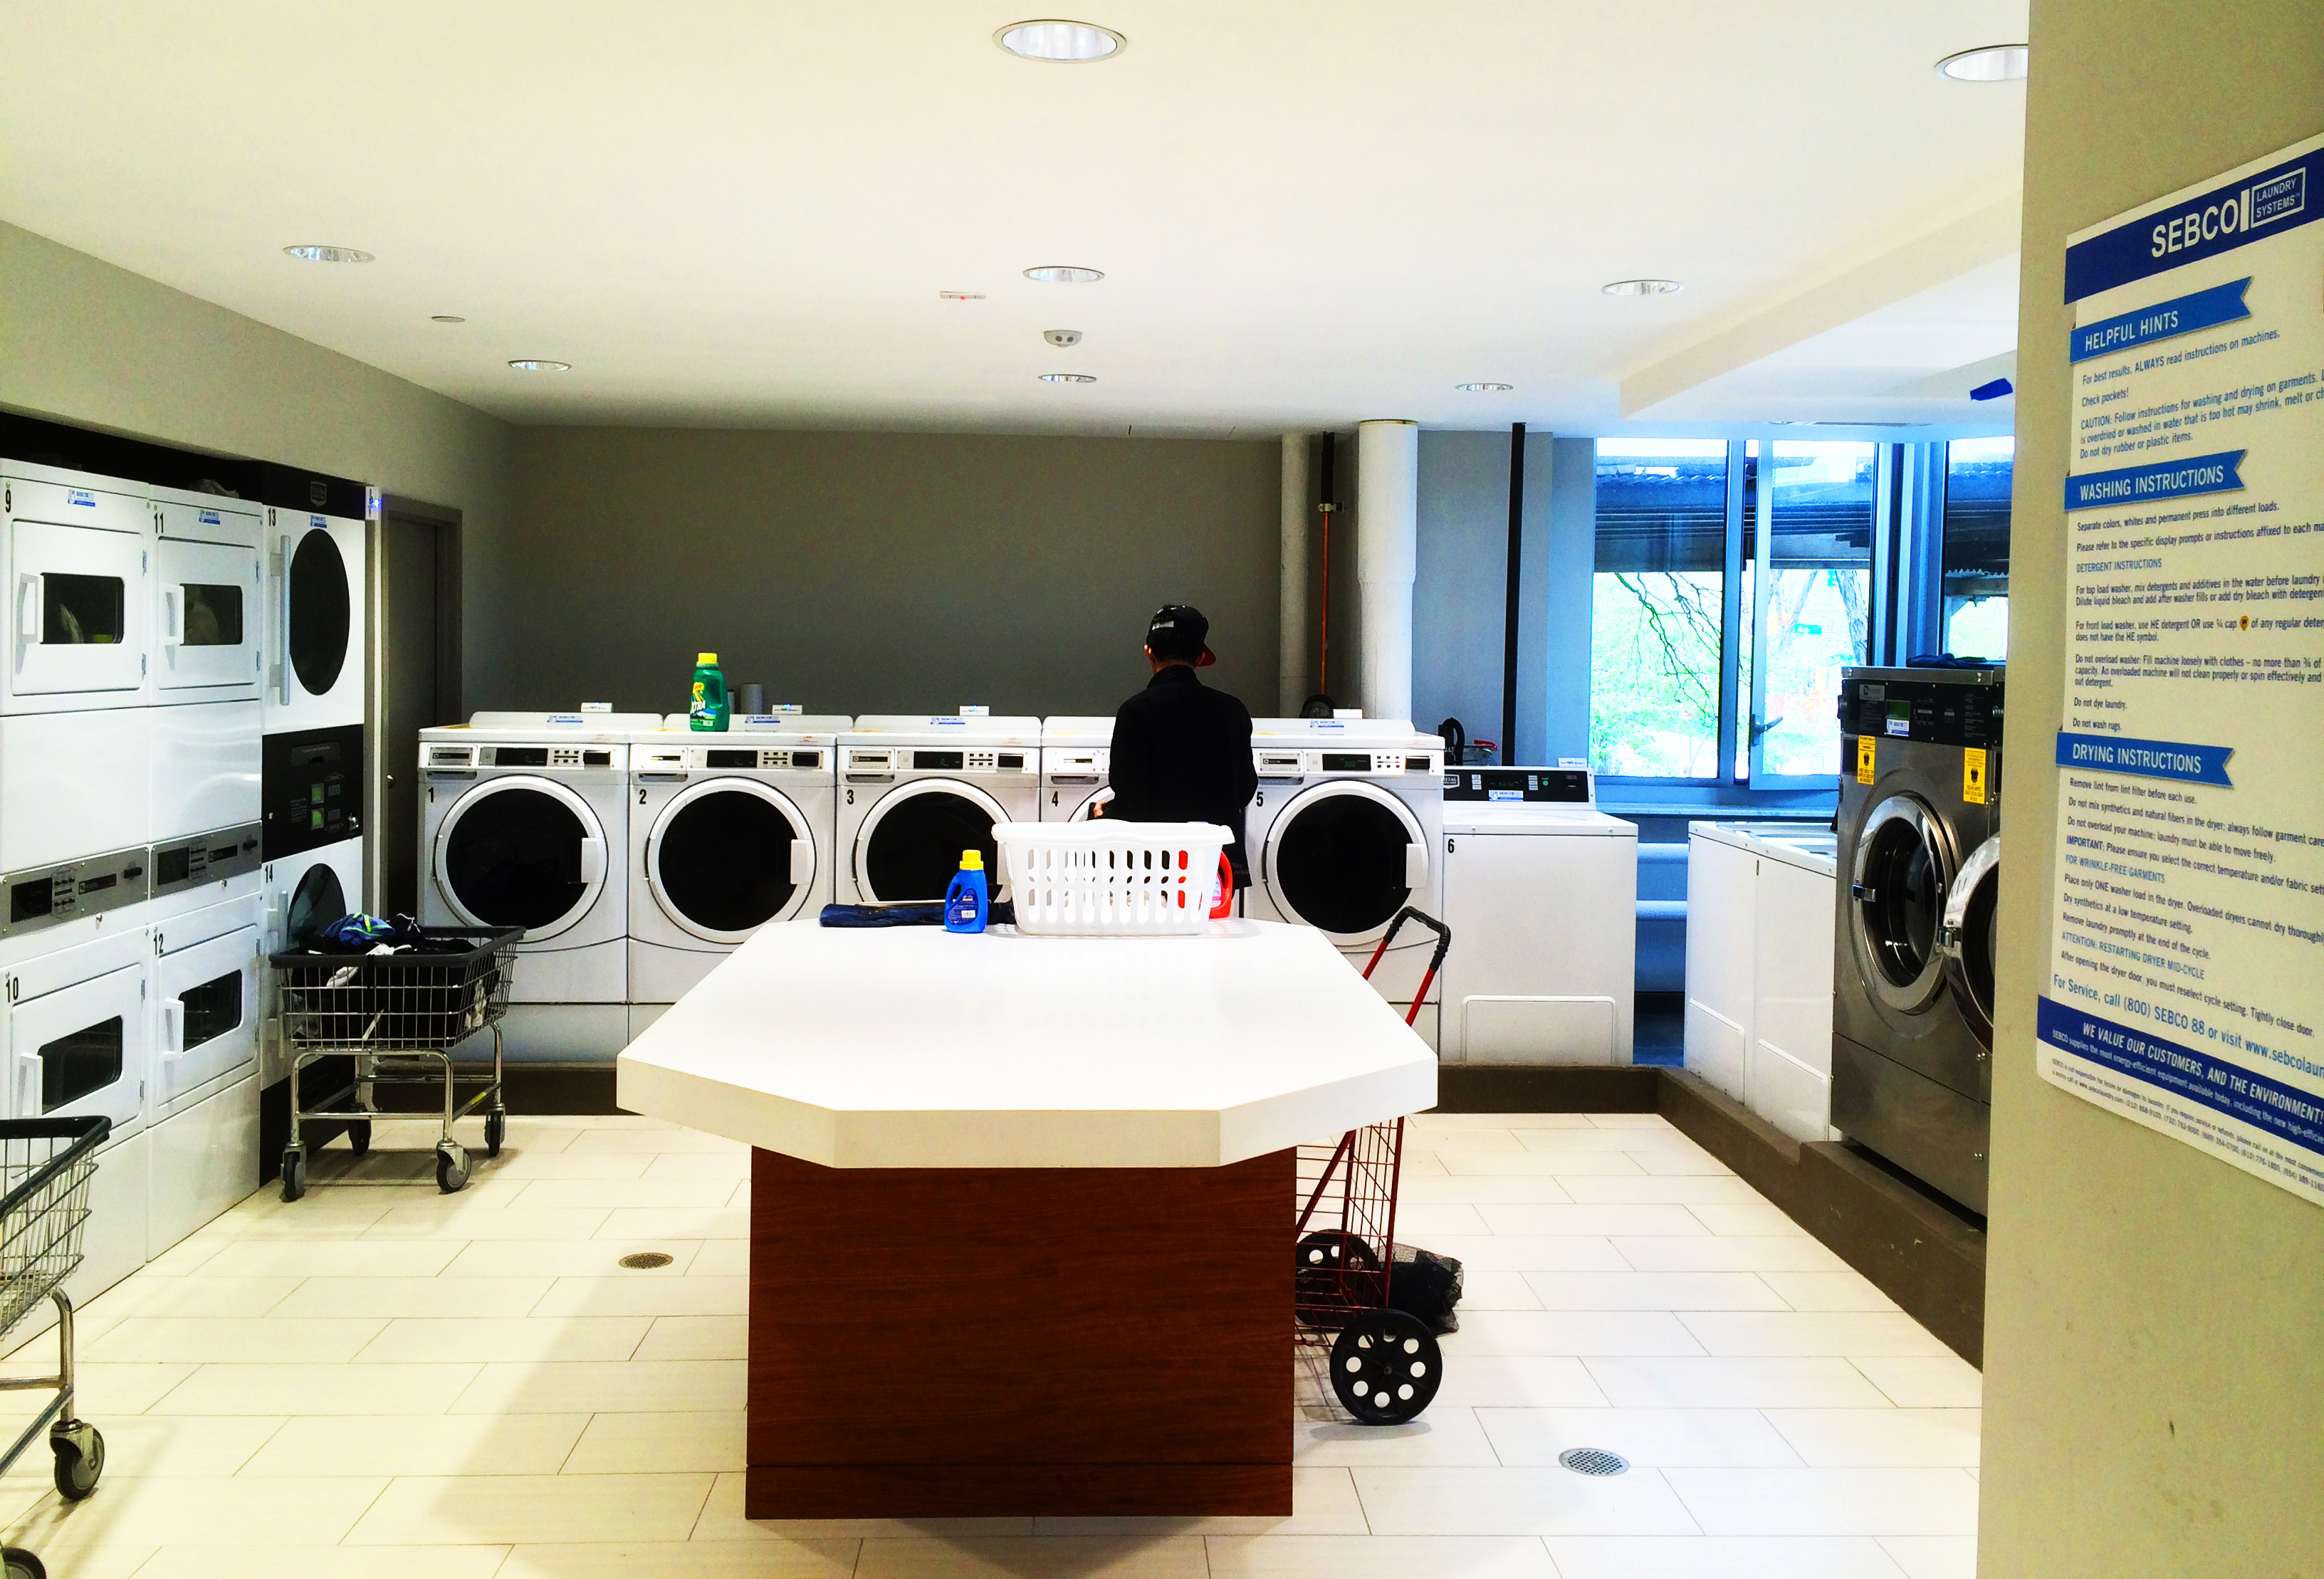 Bye bye laundromat how to get a laundry room in your buildingfor free solutioingenieria Choice Image